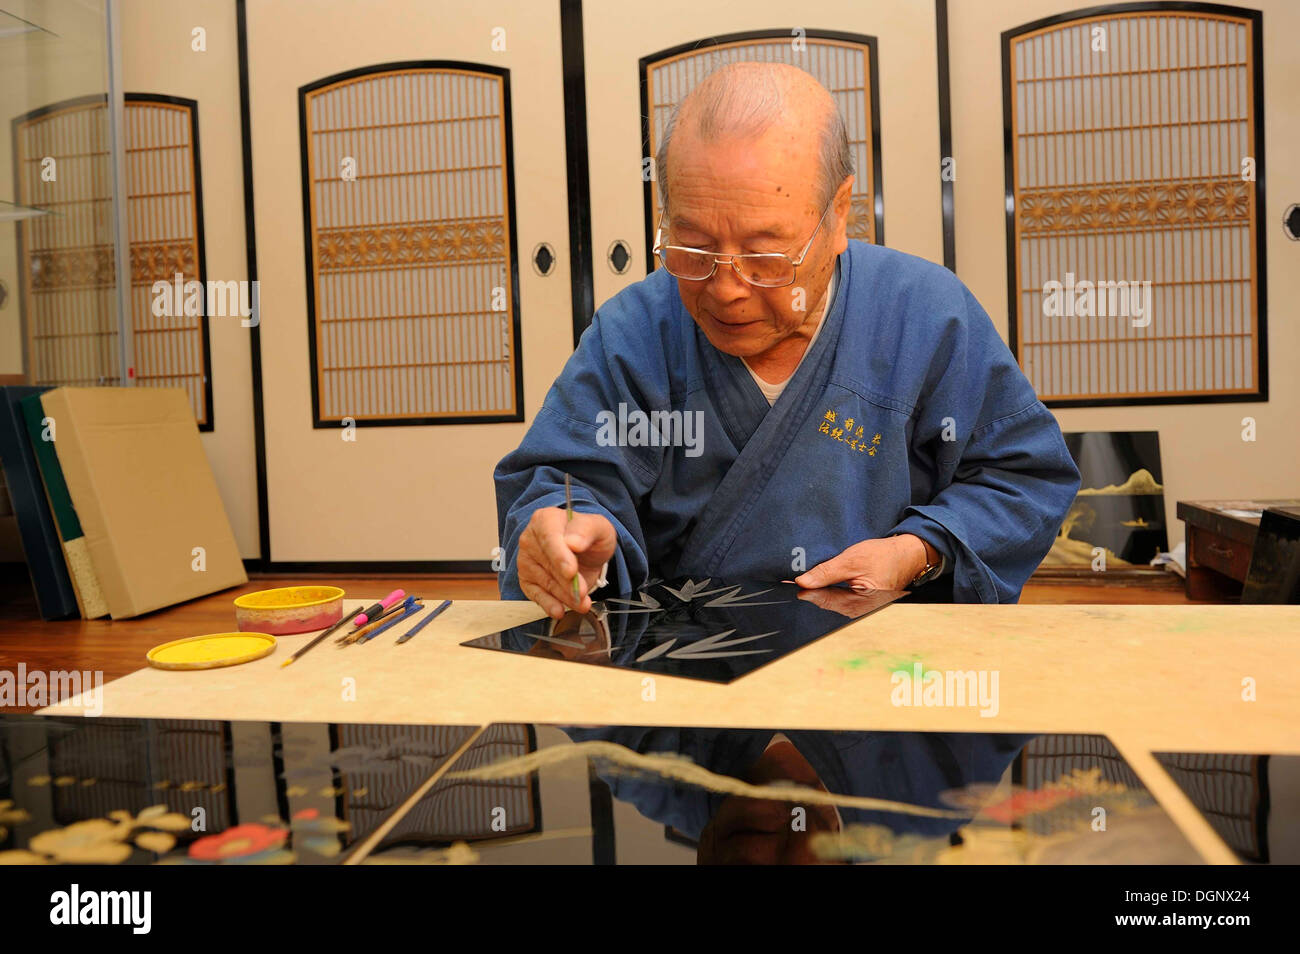 Japanese artisan in his workshop, scraping a bamboo motif into the top lacquer coat, Sabae, Fukui, Japan, East Asia, Asia - Stock Image